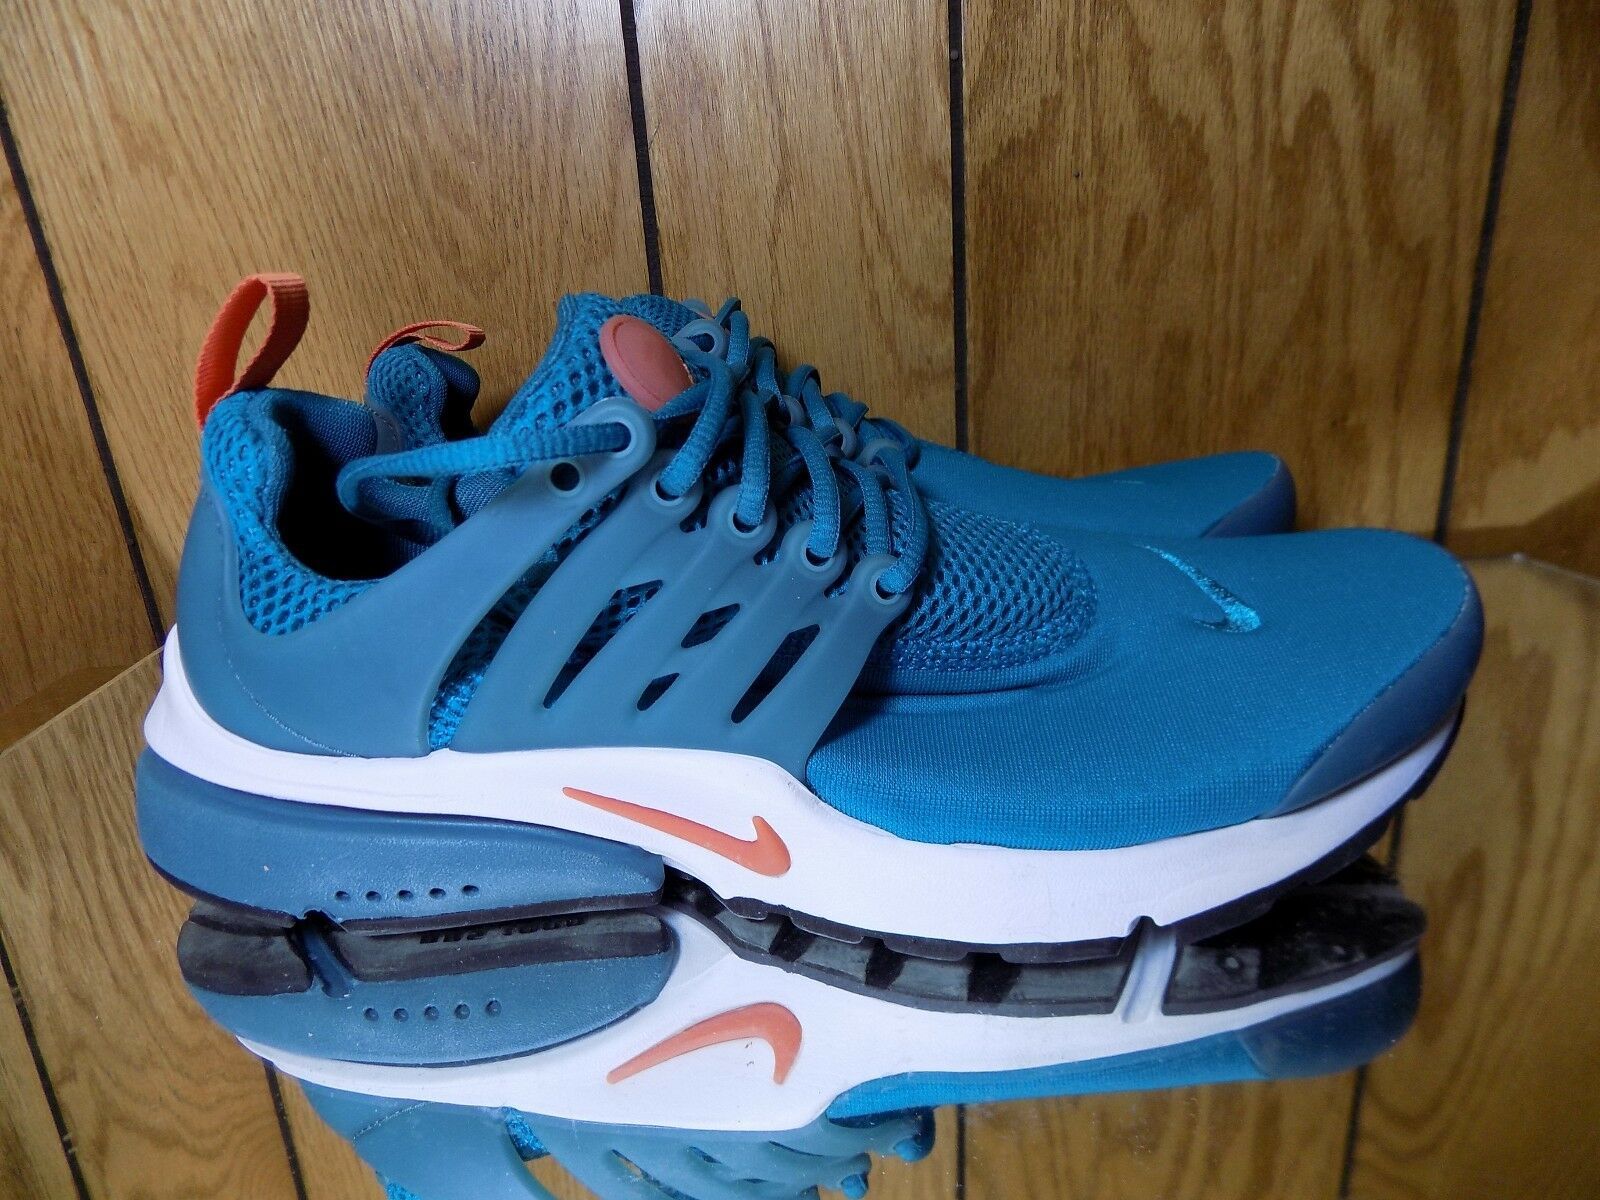 NIKE AIR PRESTO BLUE/TERRA ESSENTIAL 848187 404 BLUSTERY BLUE/TERRA PRESTO ORANGE s. 8 56de2b